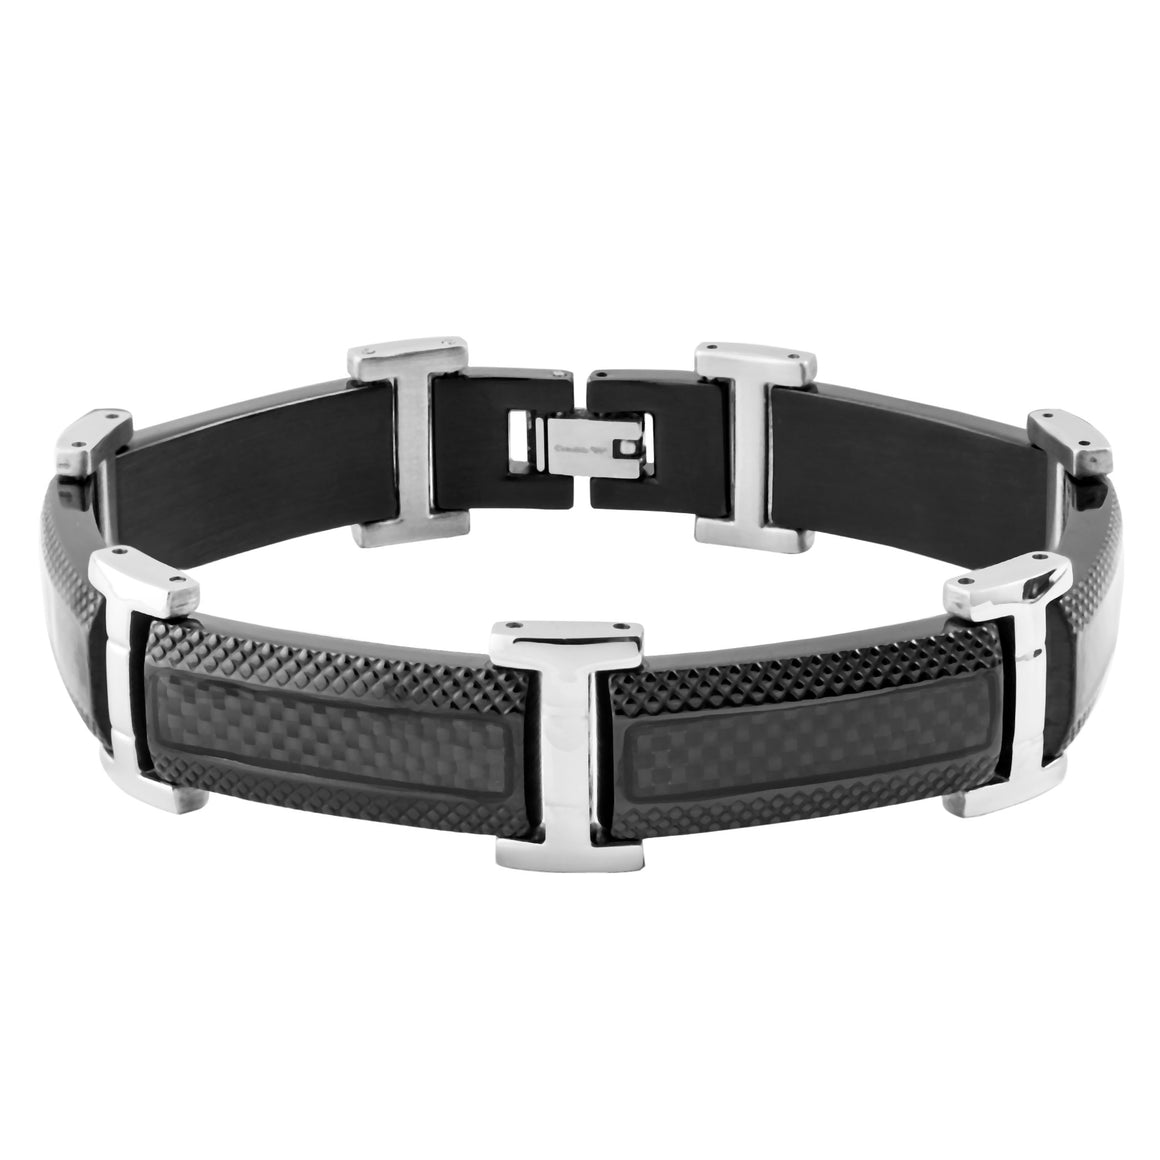 Crucible Black IP Stainless Steel Carbon Fiber Inlay Textured Link Bracelet (17 mm) - 8.5""